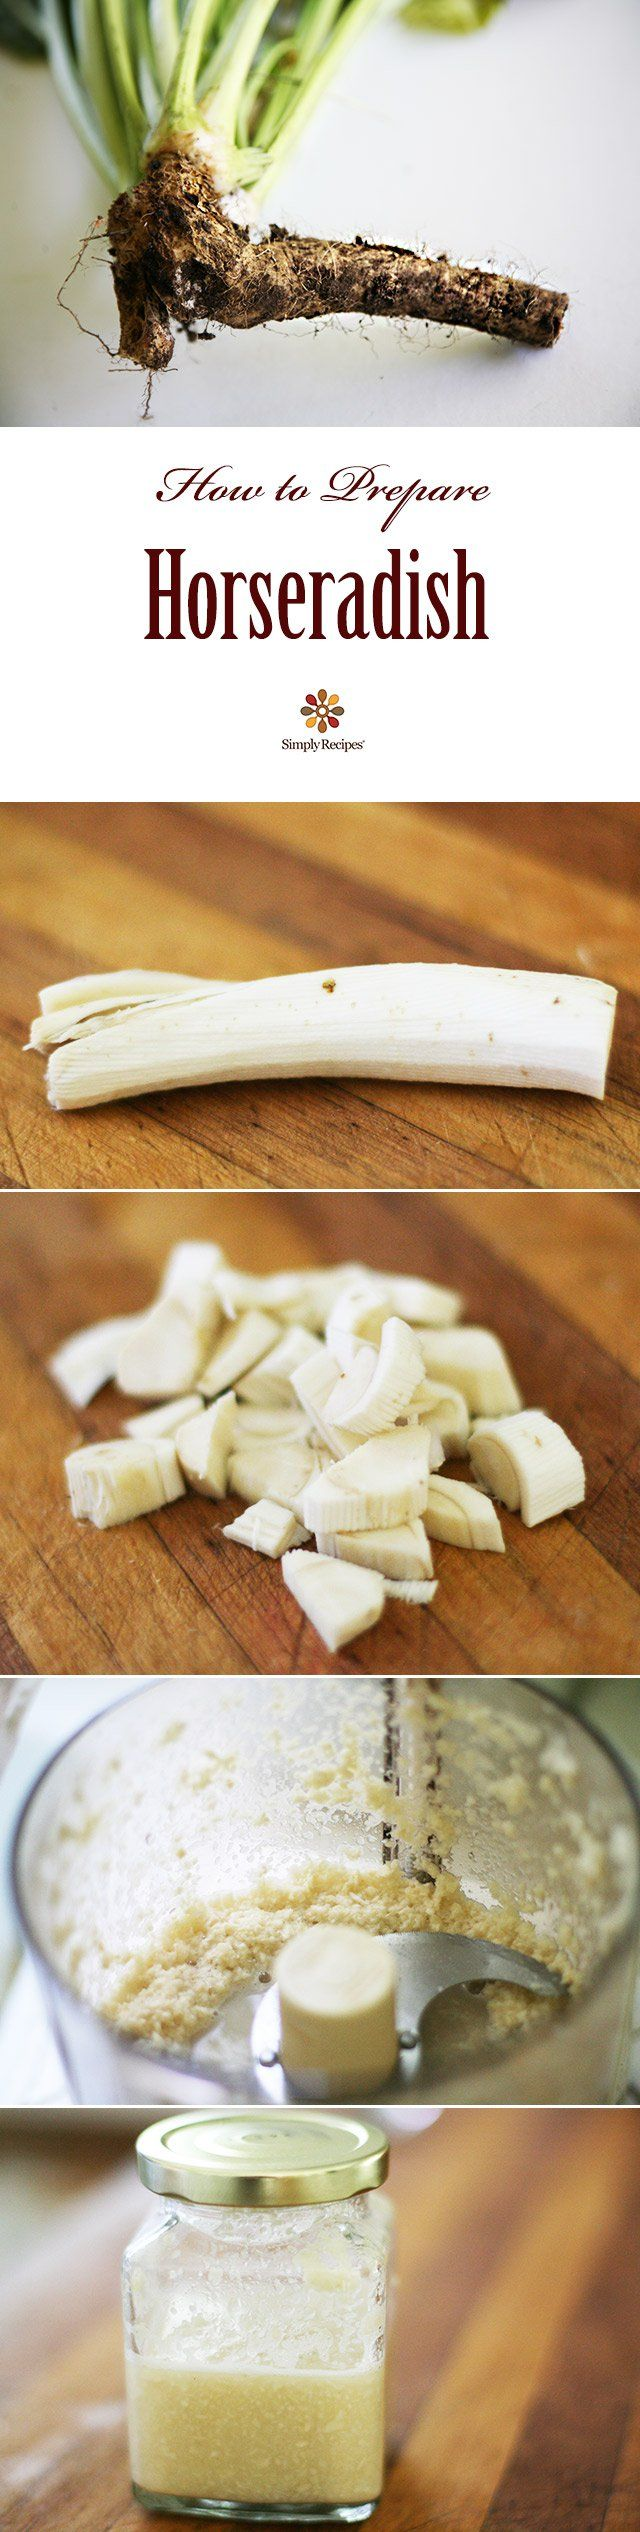 How to Prepare Horseradish ~ How to make homemade horseradish by grating horseradish root and adding vinegar. ~ SimplyRecipes.com It's a root and related to wasabi, broccoli and cabbage, so a vegetable then!